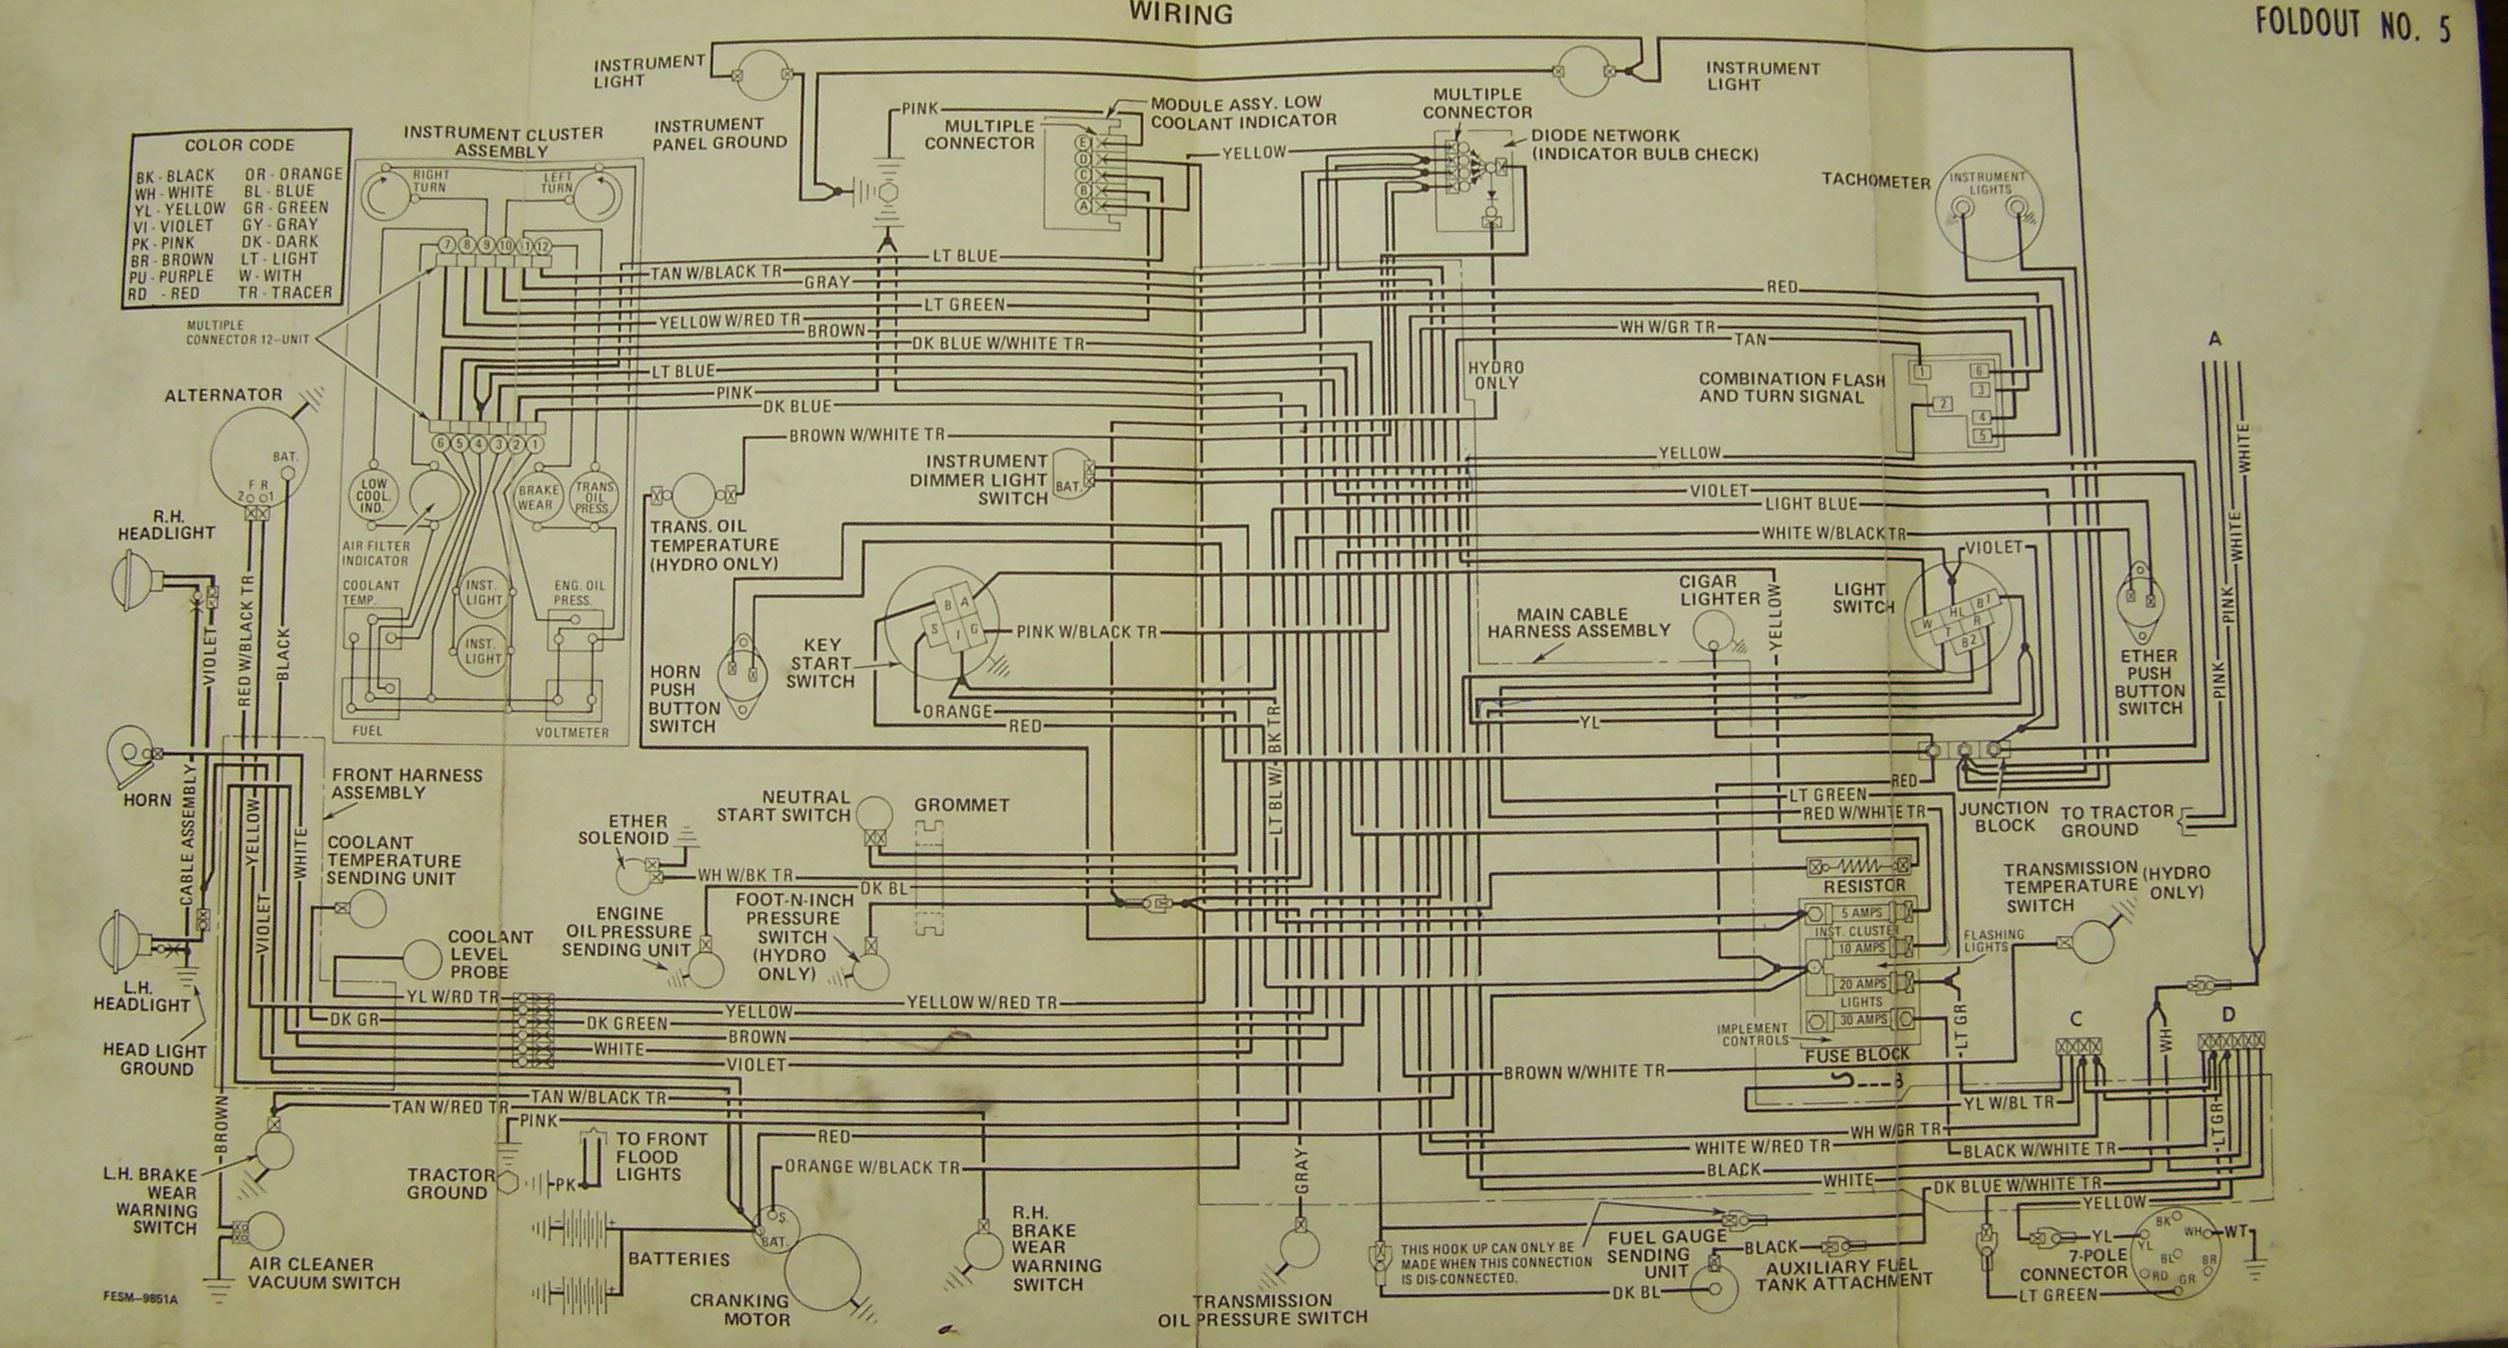 Farmall A Wiring Diagram Layout Diagrams 12 Volt Home Carter Gruenewald Co Inc Ih Tractor Electrical Rh Cngco Com 1945